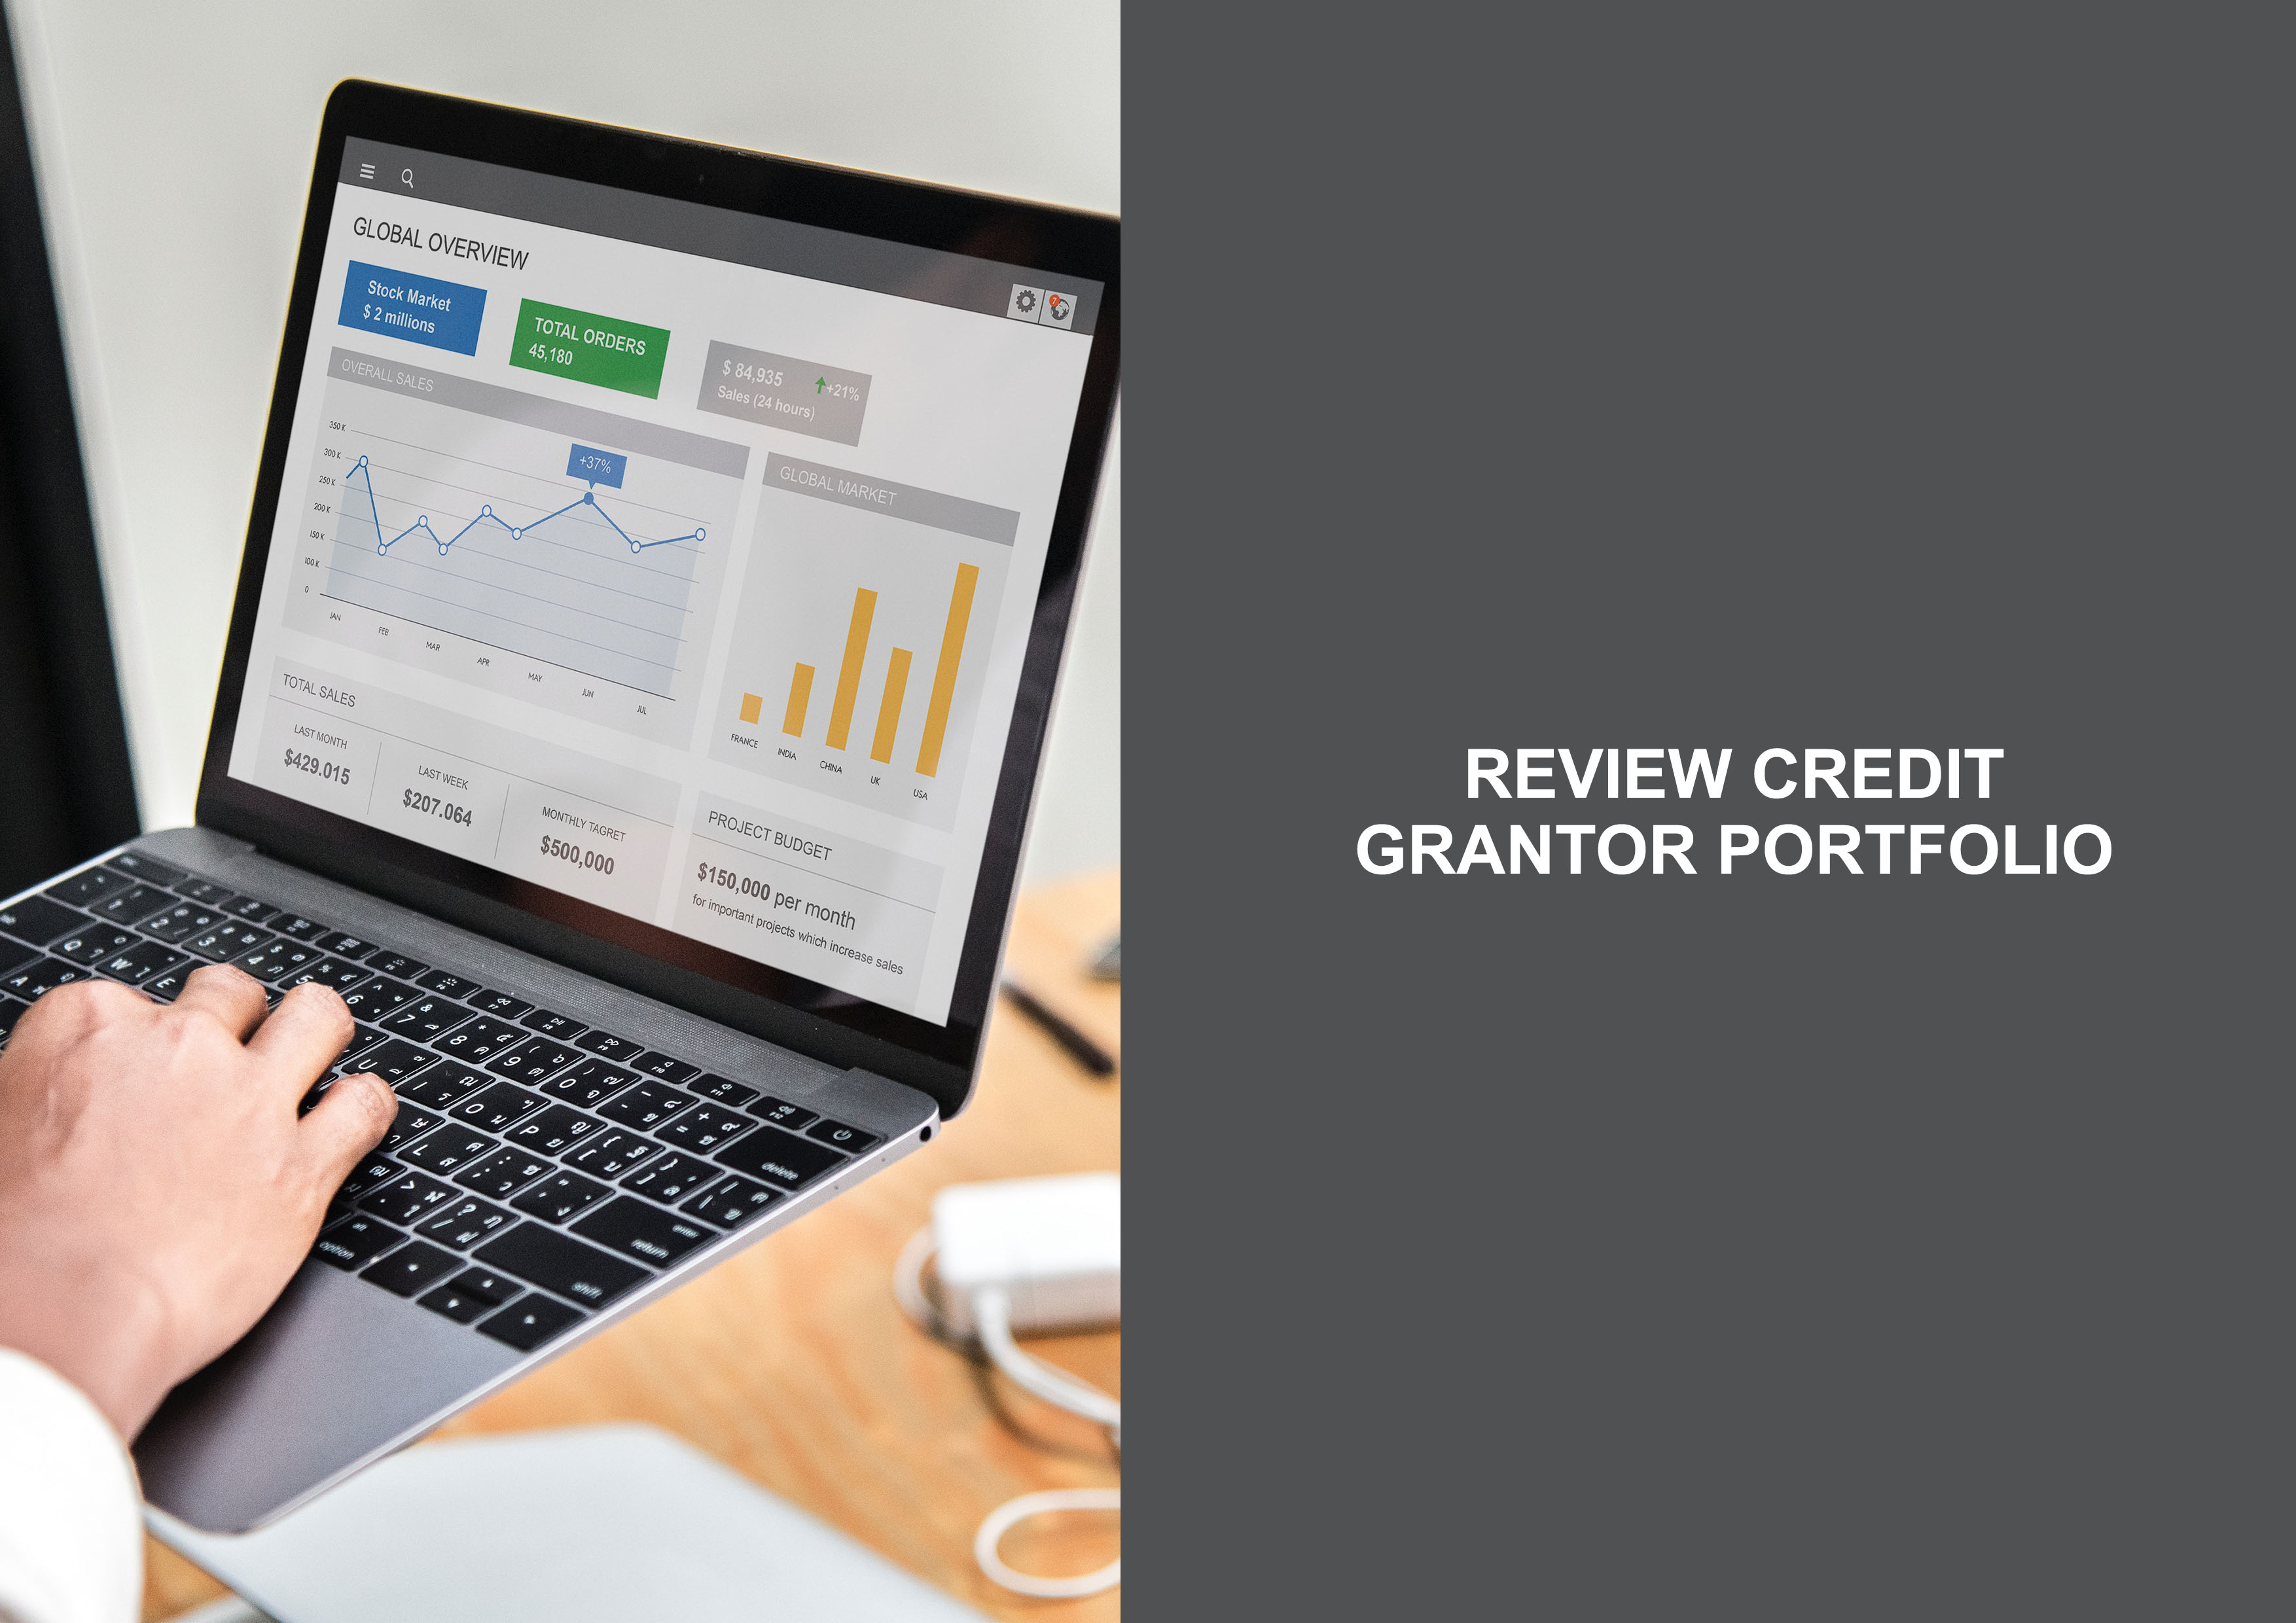 Review credit grantor portfolio